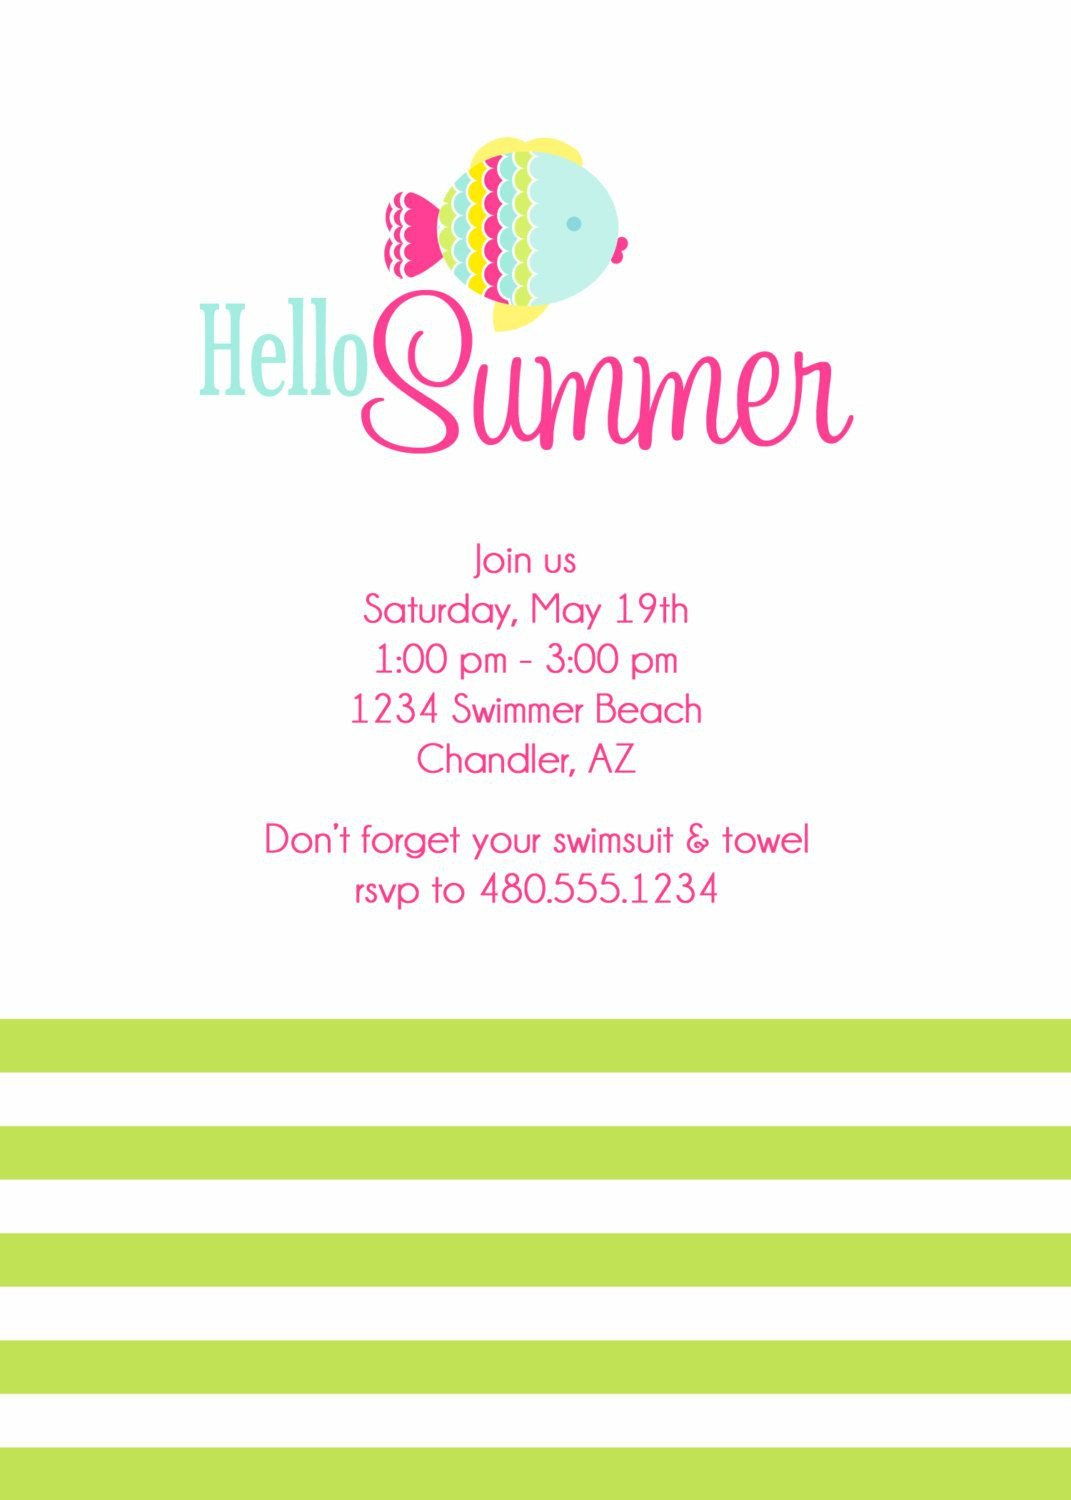 Summer Party Invites Templates Card Template Summer Party Invitations Card Invitation